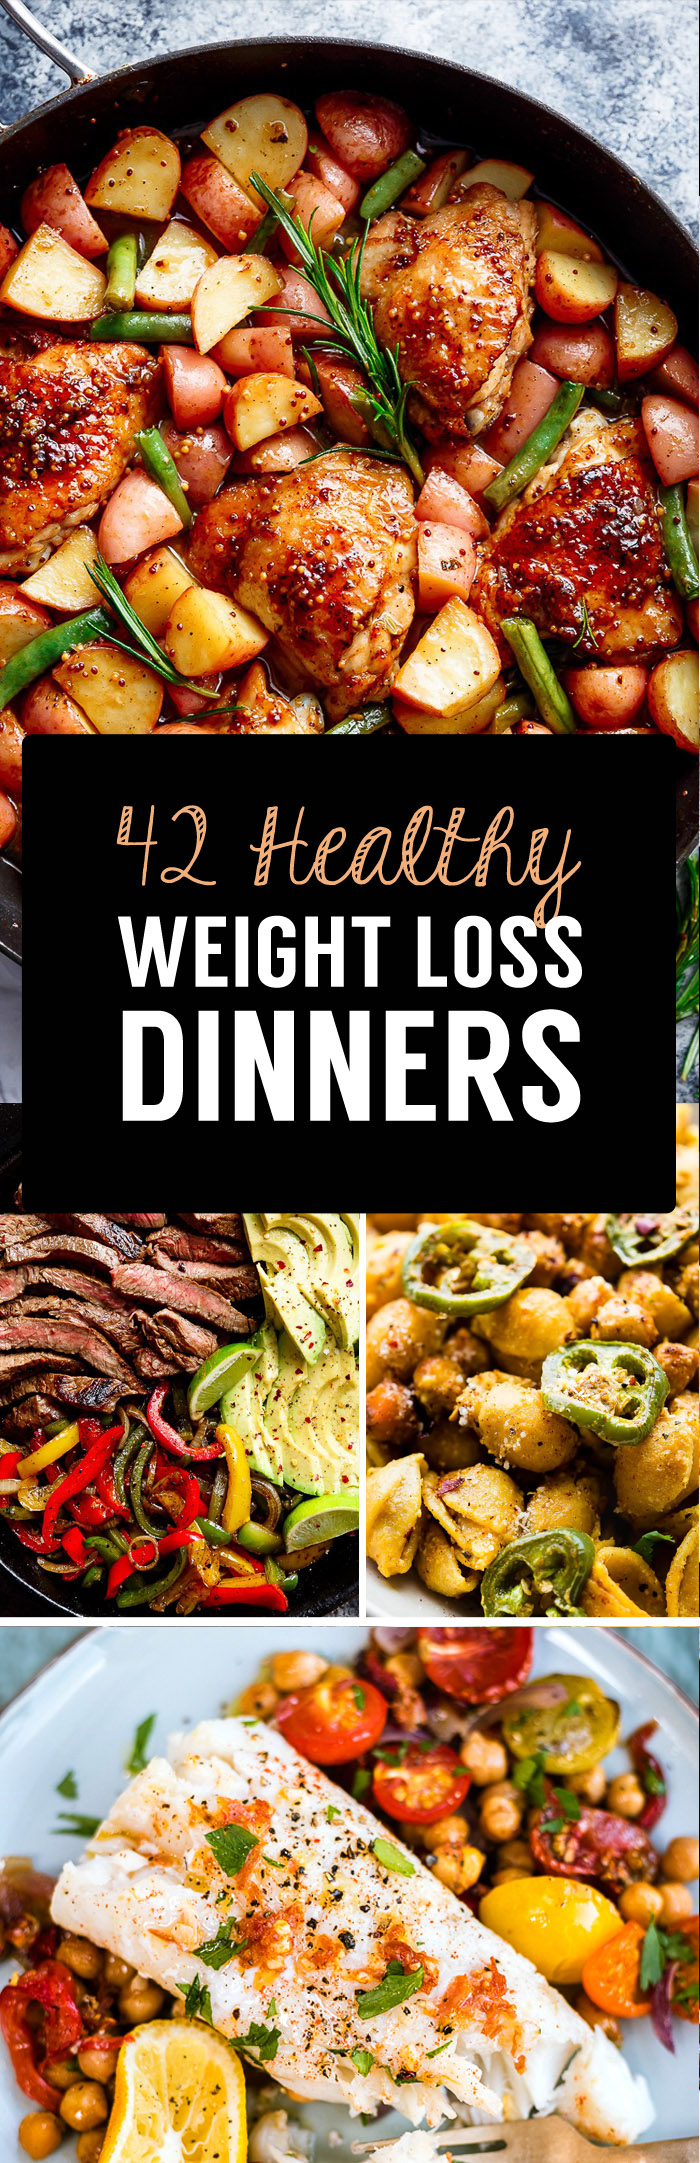 healthy dinners for weight loss recipes